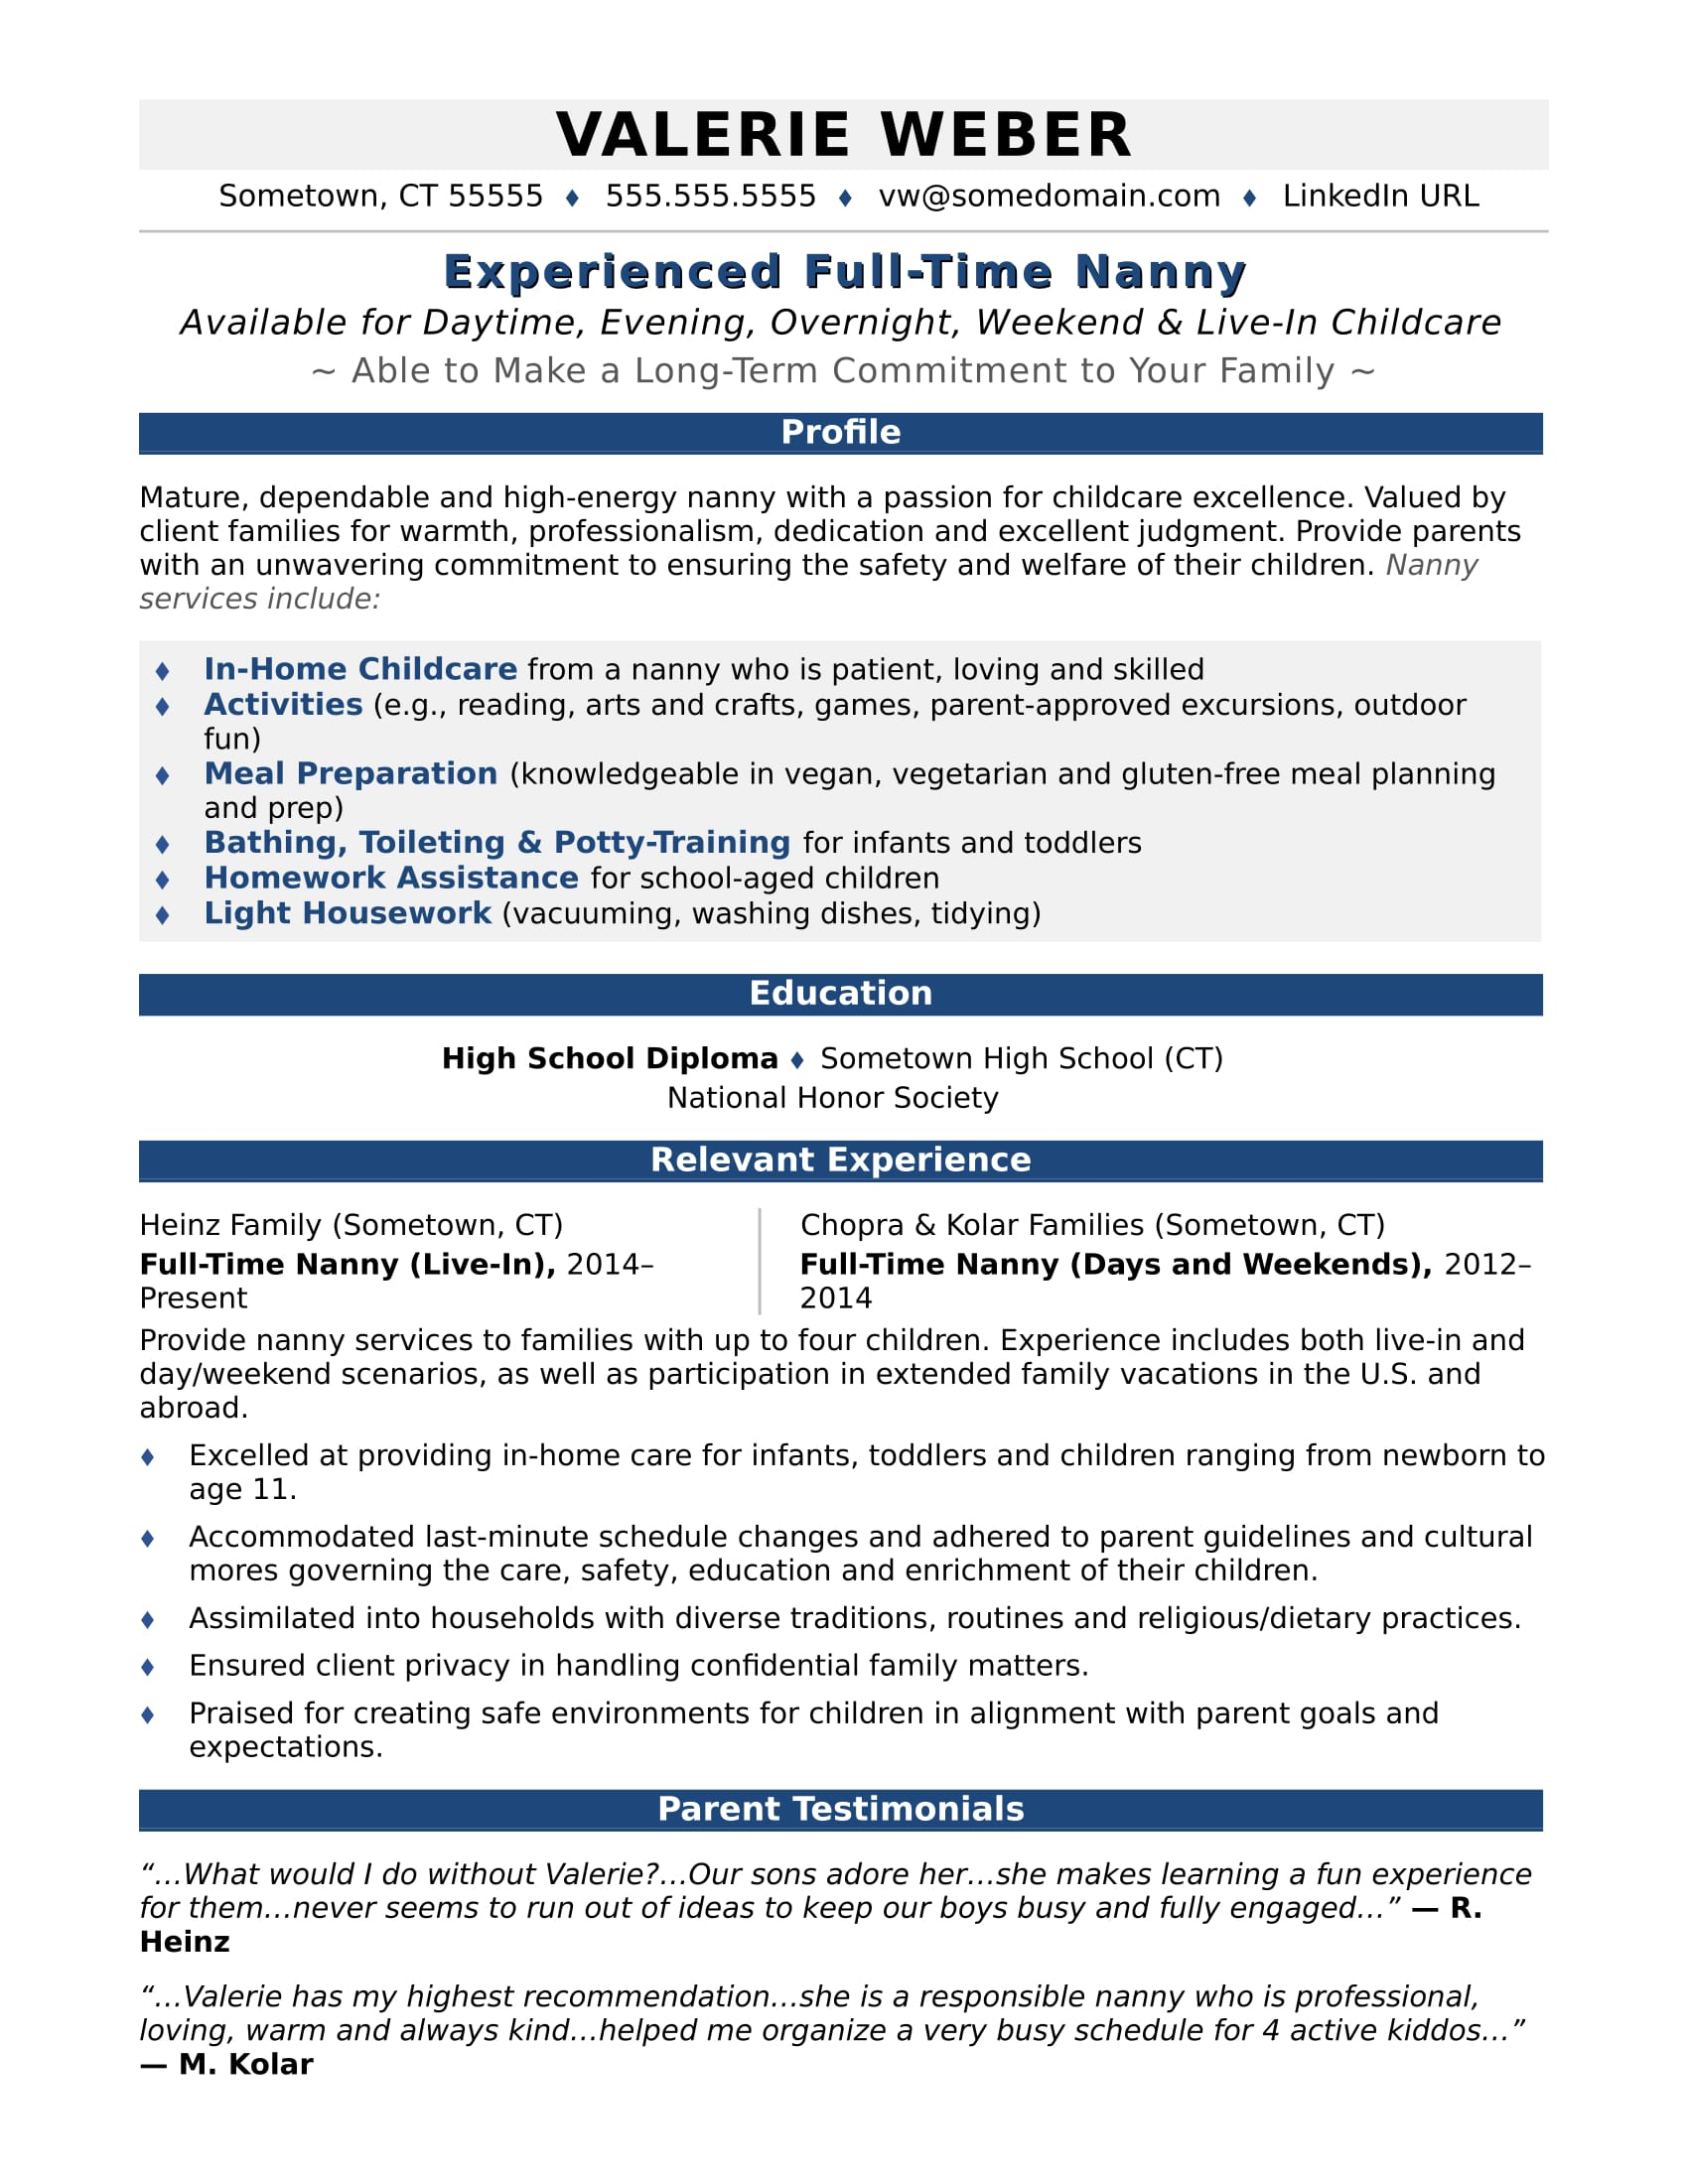 nanny resume sample monster free babysitting templates istqb certified tester with logo Resume Free Babysitting Resume Templates